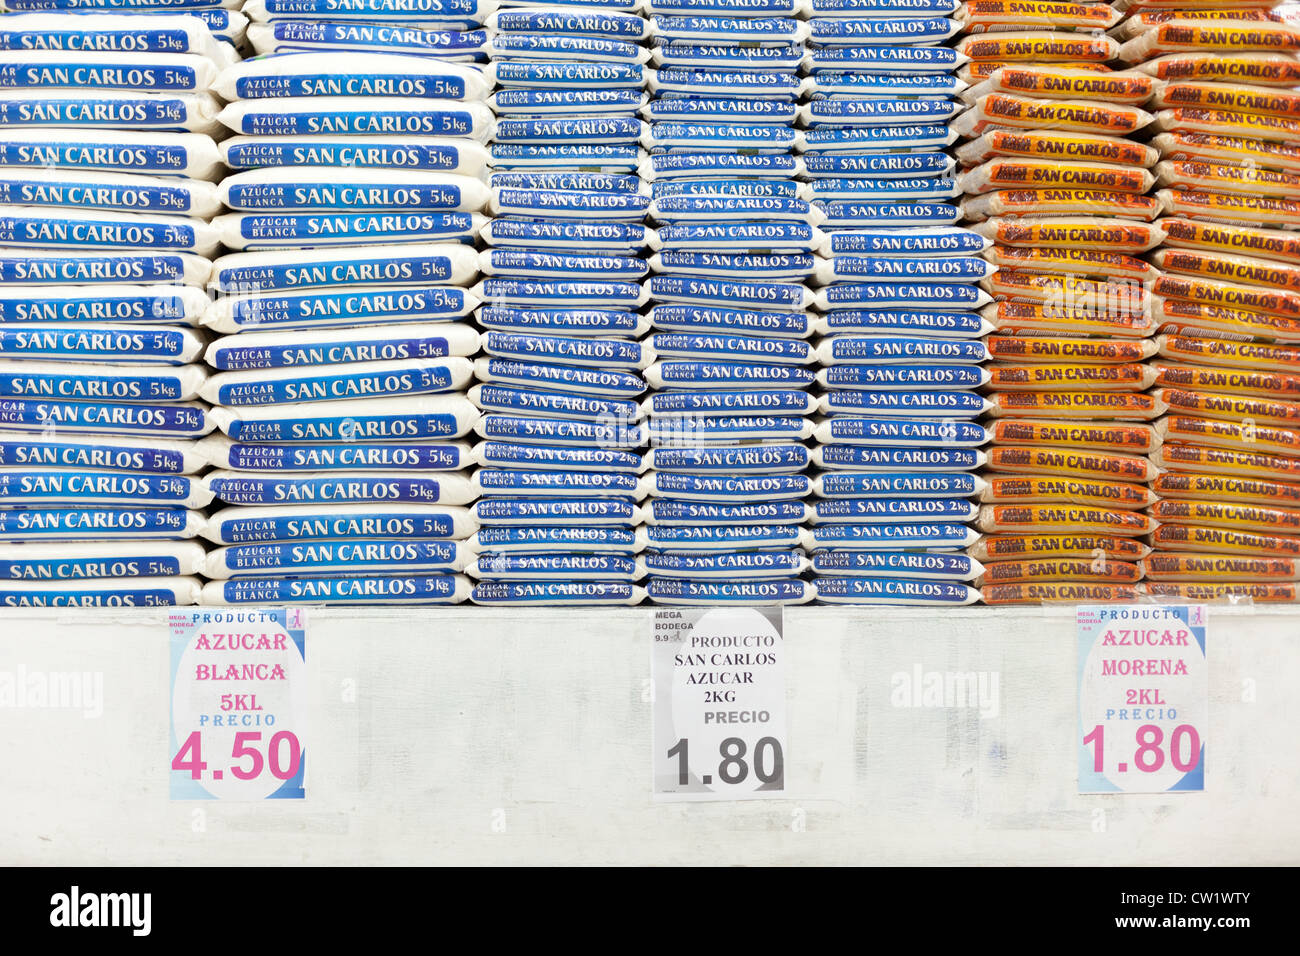 Piles Of Sugar Along With The Price Tag For The 2Kg Bag As Could Be Bought - Stock Image